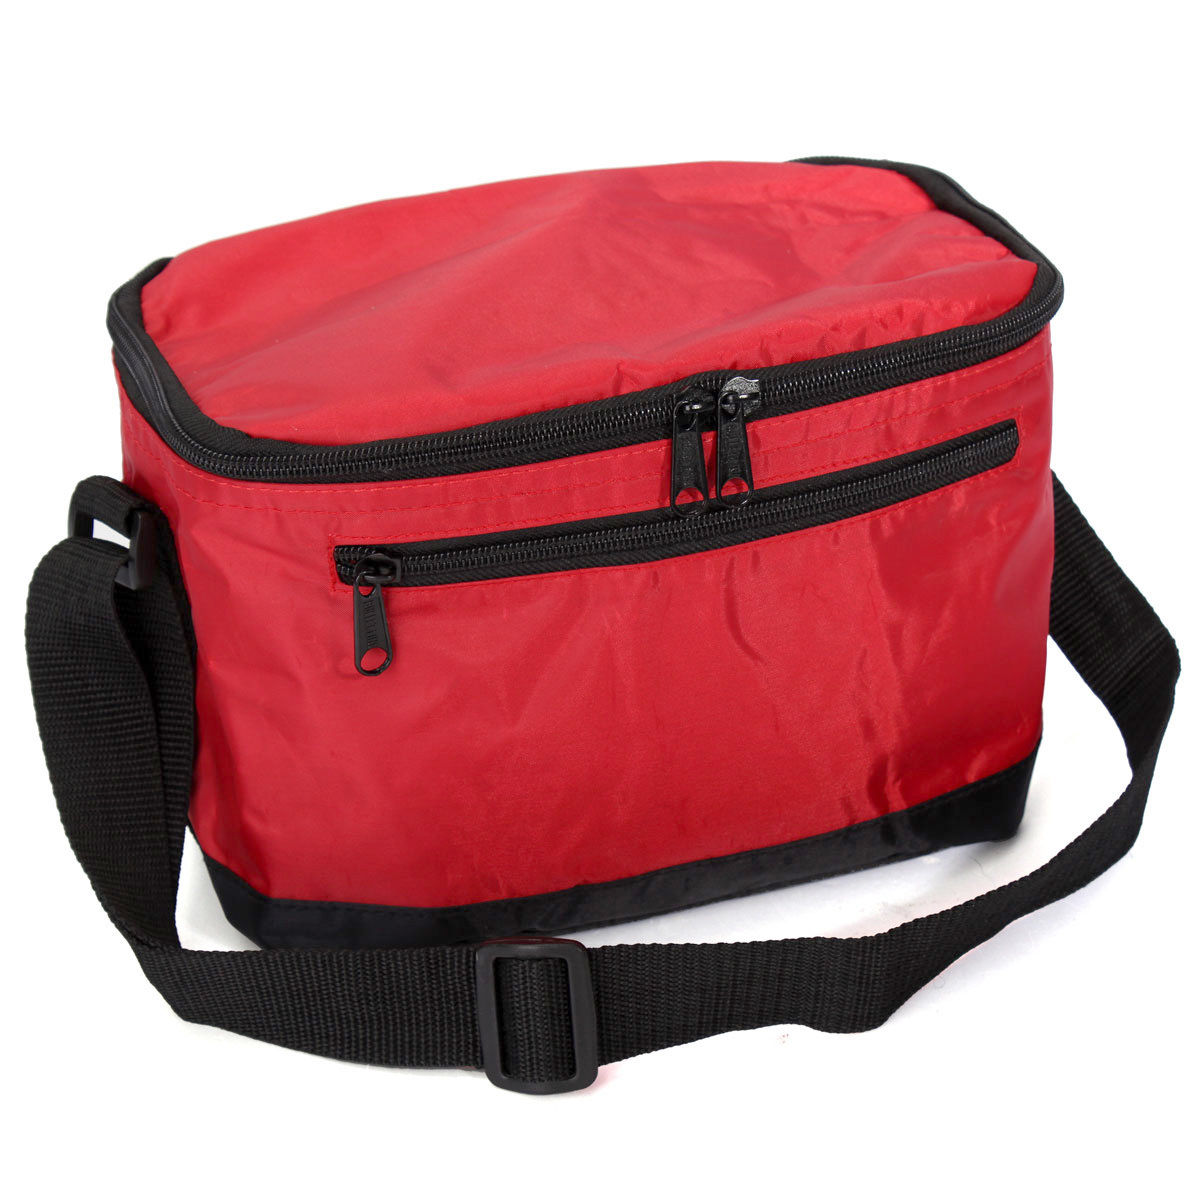 Thermal Cooler Waterproof Insulated Portable Tote Picnic Lunch Bag New Stylish